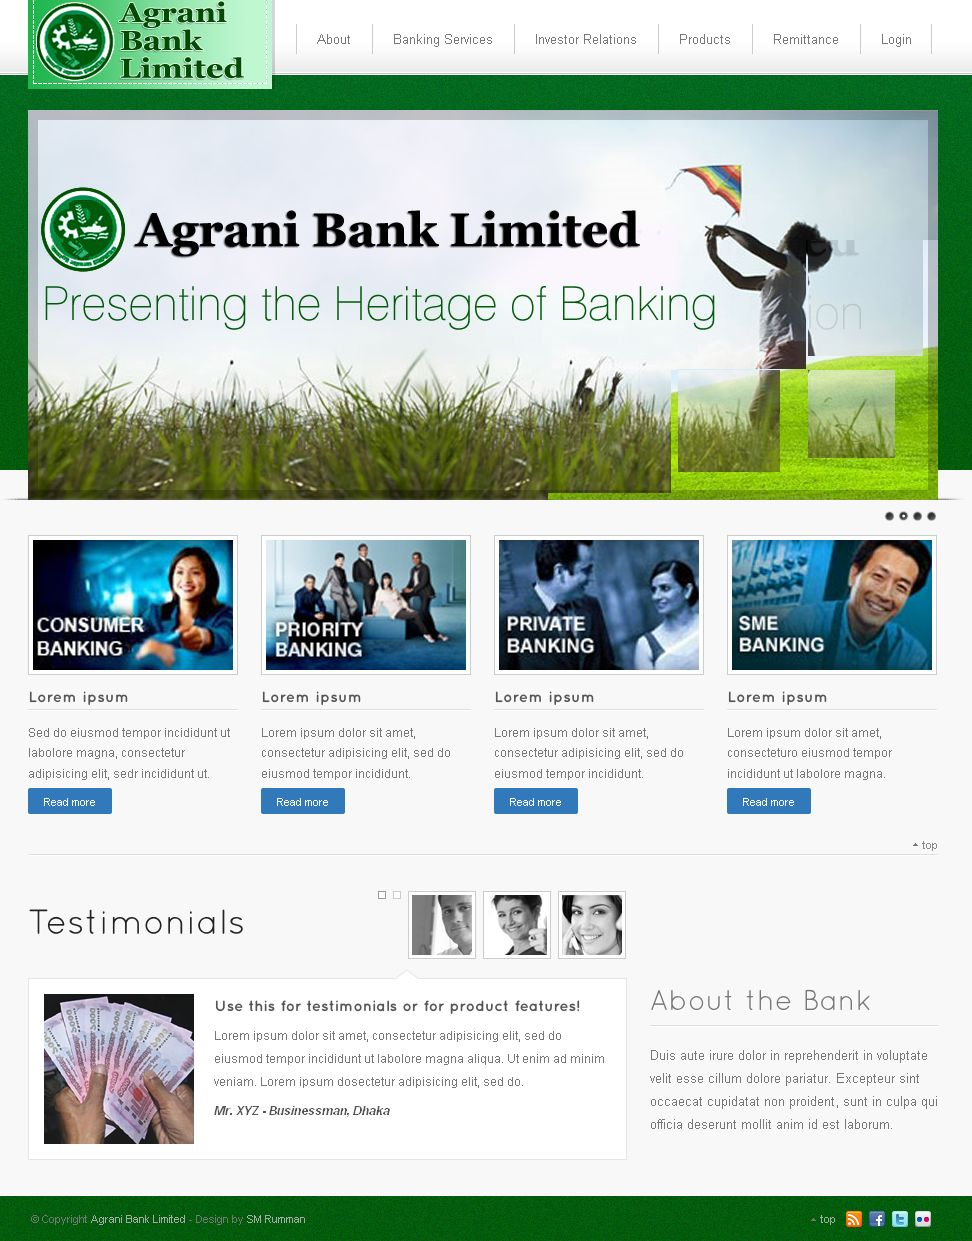 agrani bank Agrani bank job exam result, exam date and admit card download agrani bank officer cash recruitment result 2017 agranibankorg agrani bank exam date will be announced very soon most probably exam will be held on may 2017.